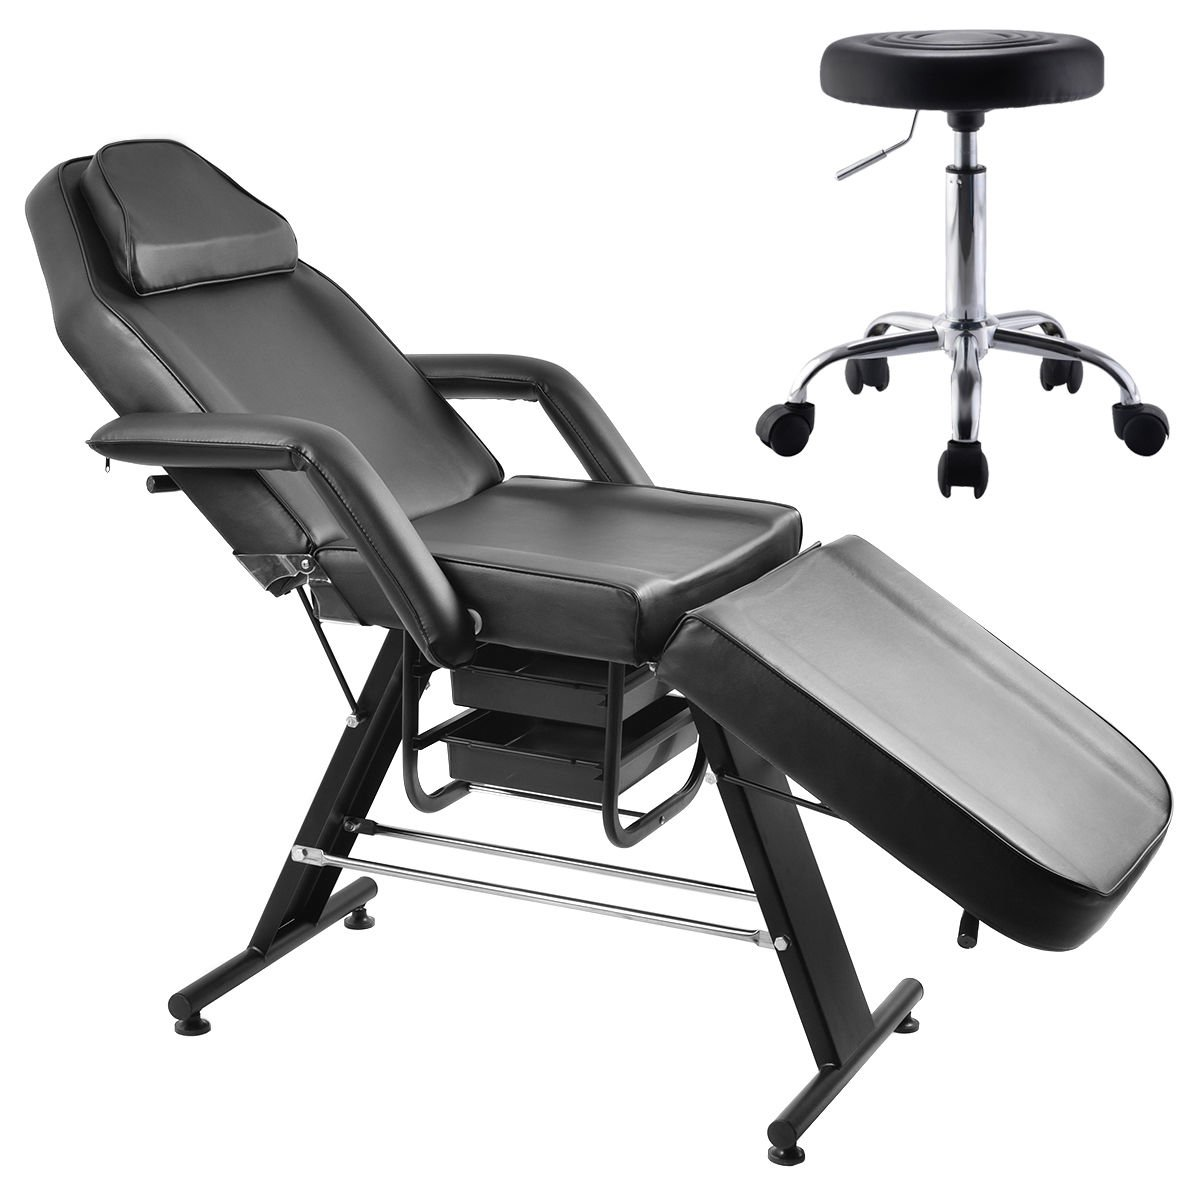 massage table and chair. Amazon.com: New Adjustable Salon SPA Black Massage Bed Tattoo Chair Table Beauty Basket W/Stool: And